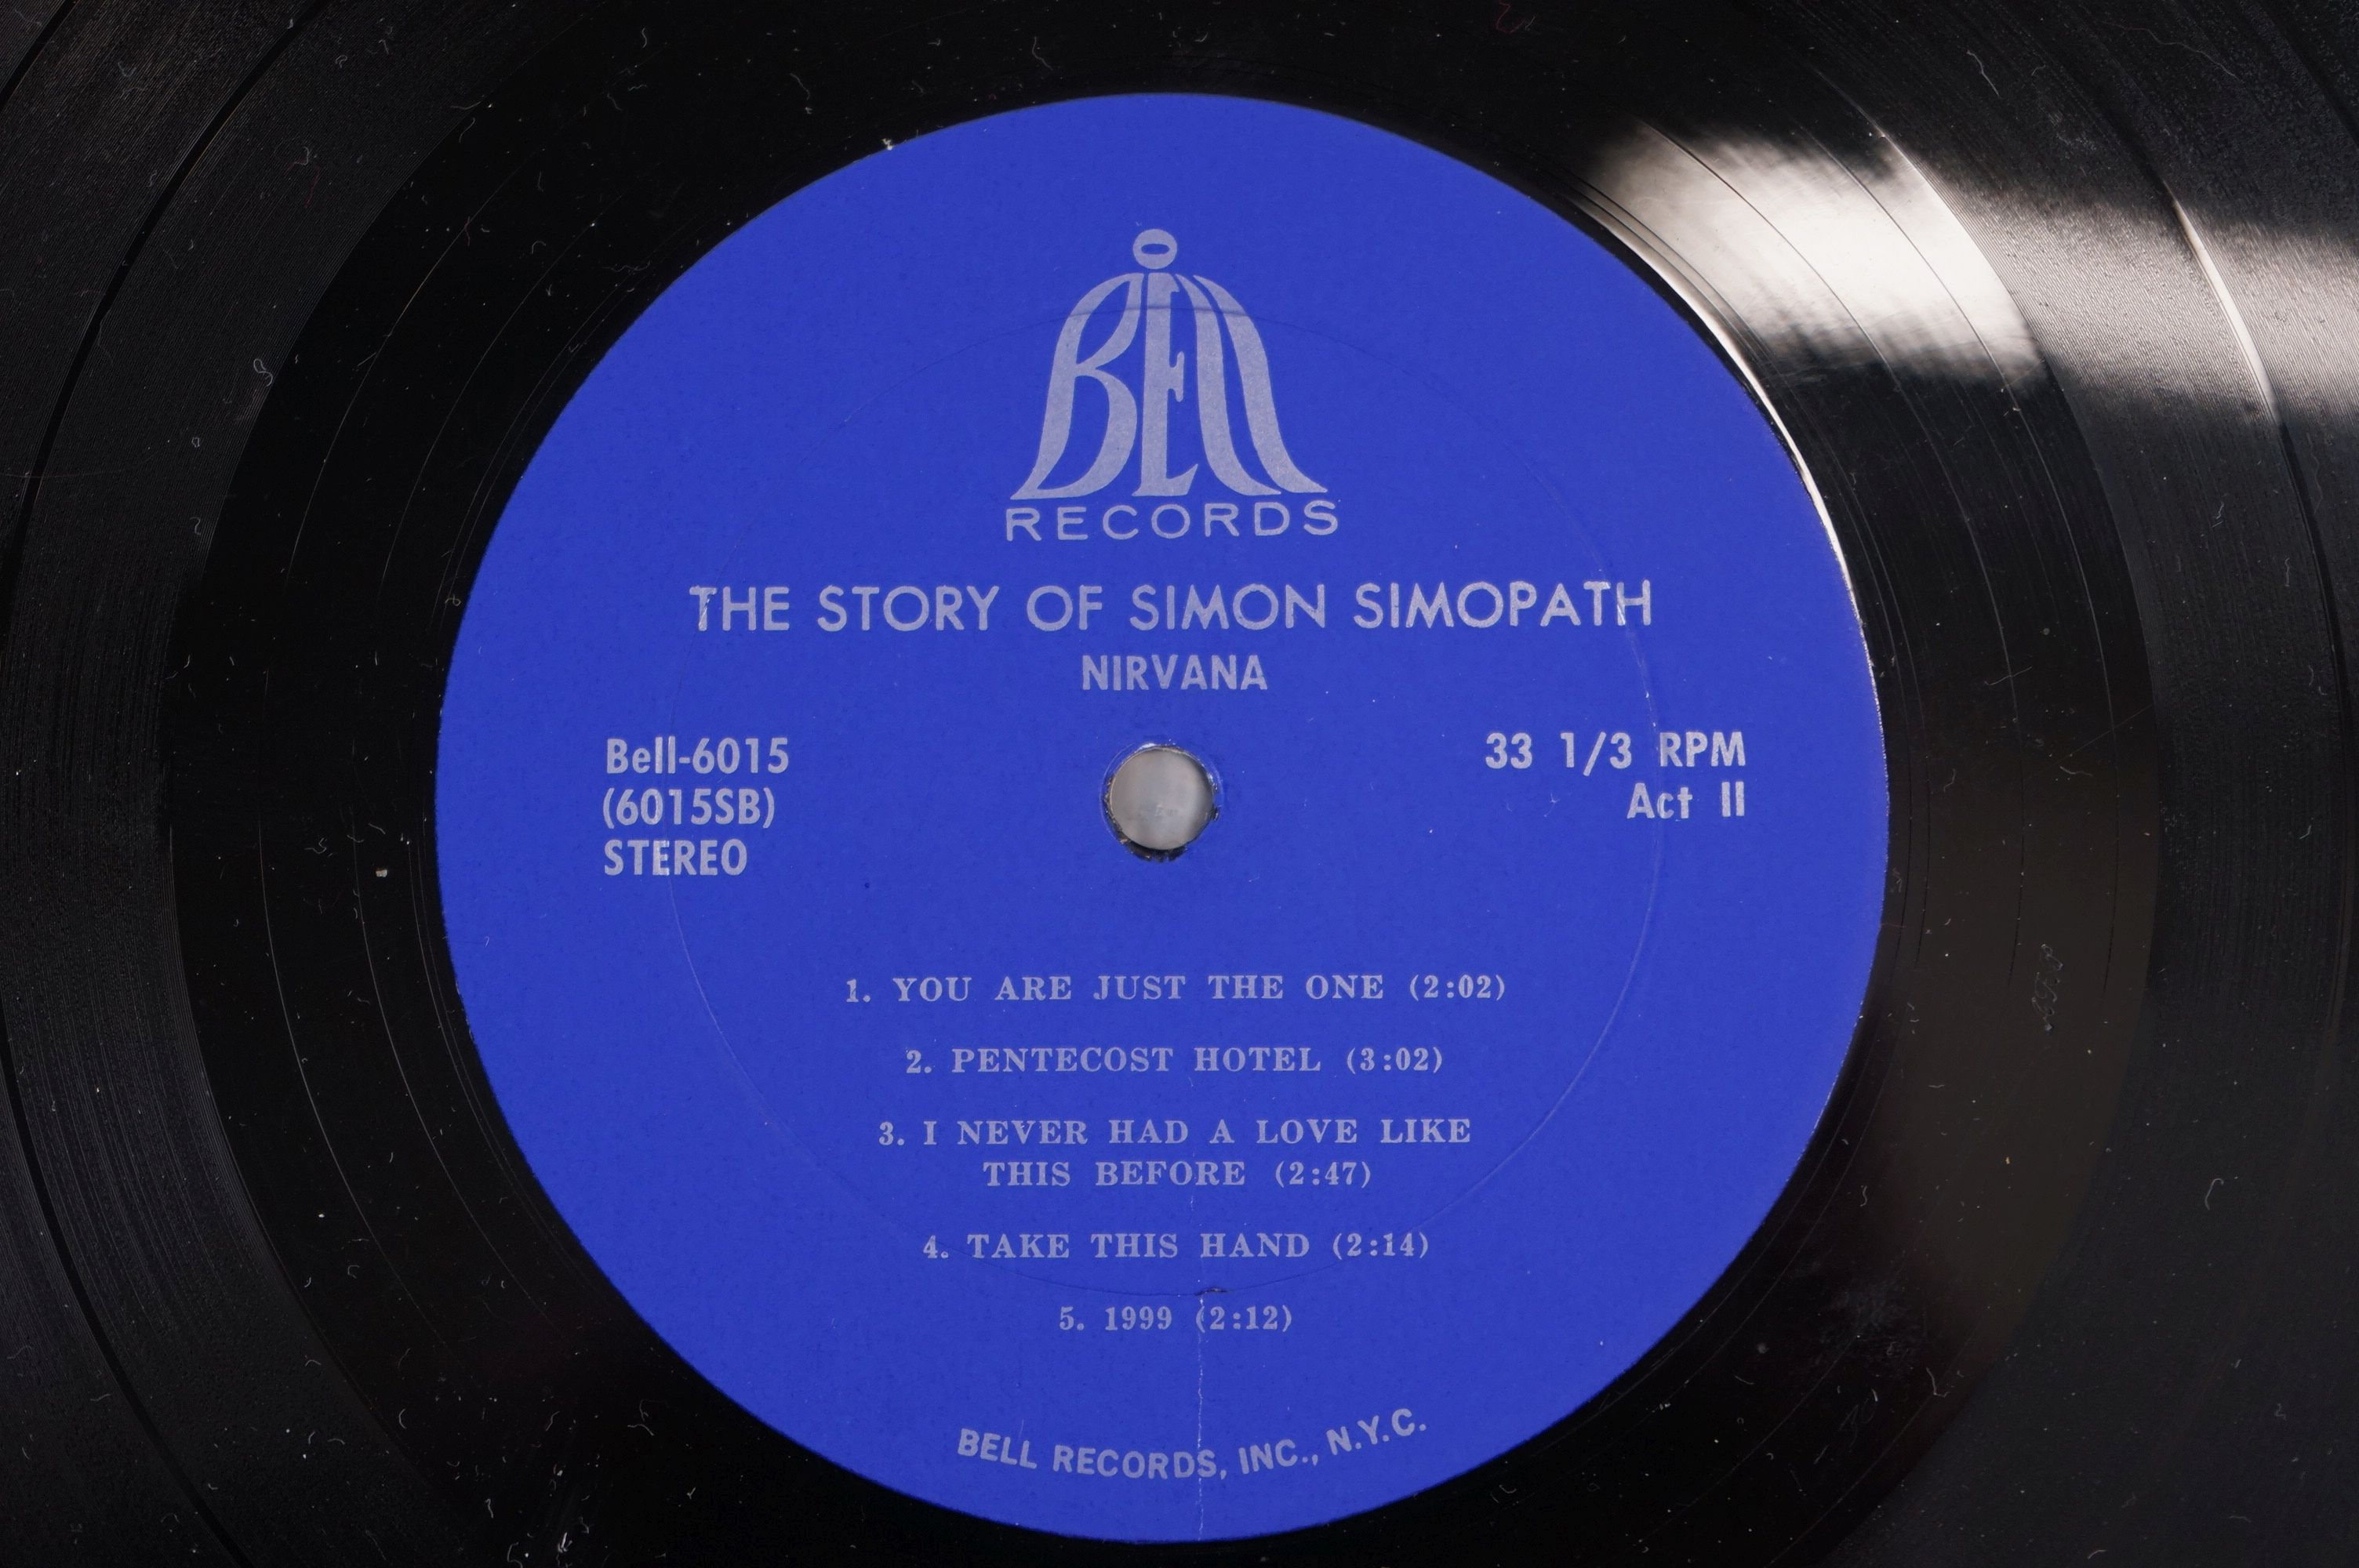 Vinyl - Two Nirvana LPs to include The Story of Simon Simopath LP on Bell Records 6015-S Stereo, - Image 3 of 13